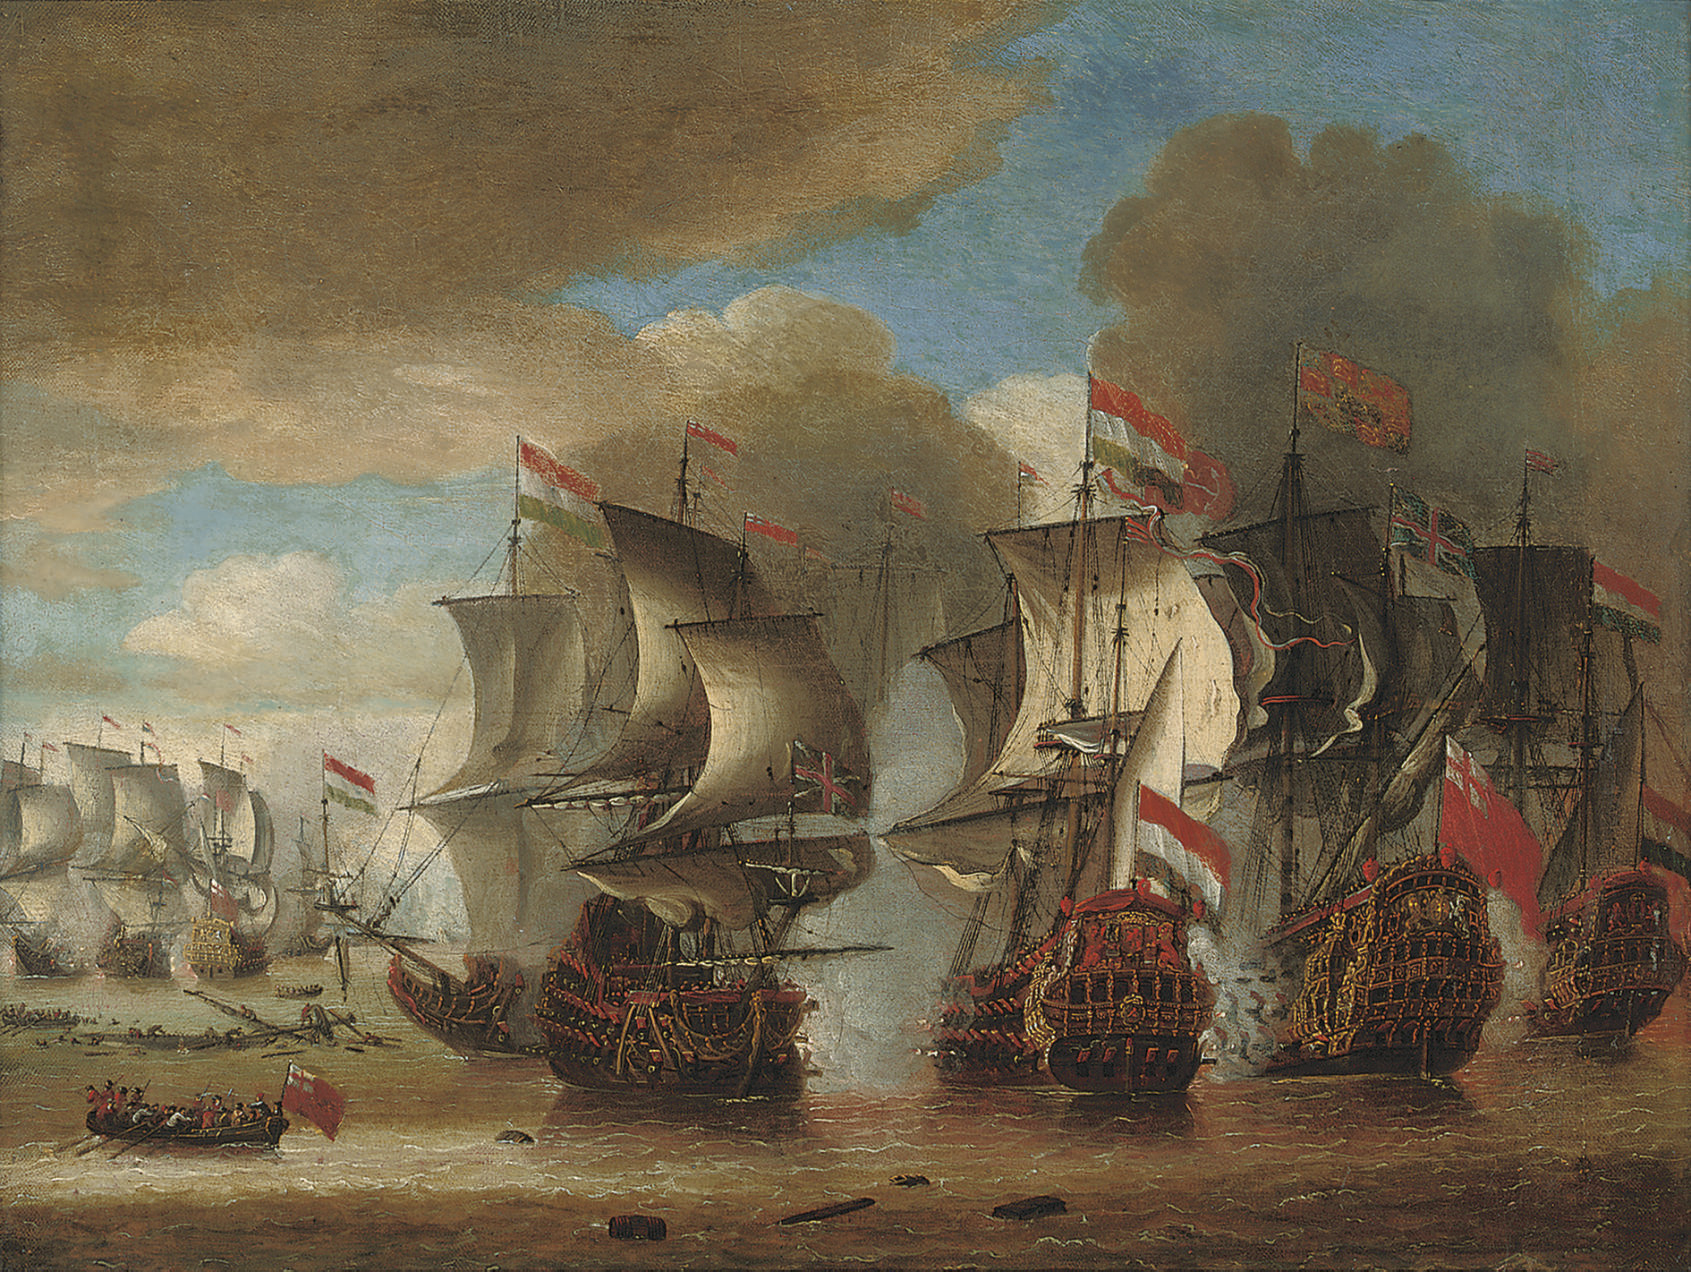 The Battle of Solebay, 28th May 1672; the English flagship Royal Prince heavily engaged by Dutch vessels on either side of her